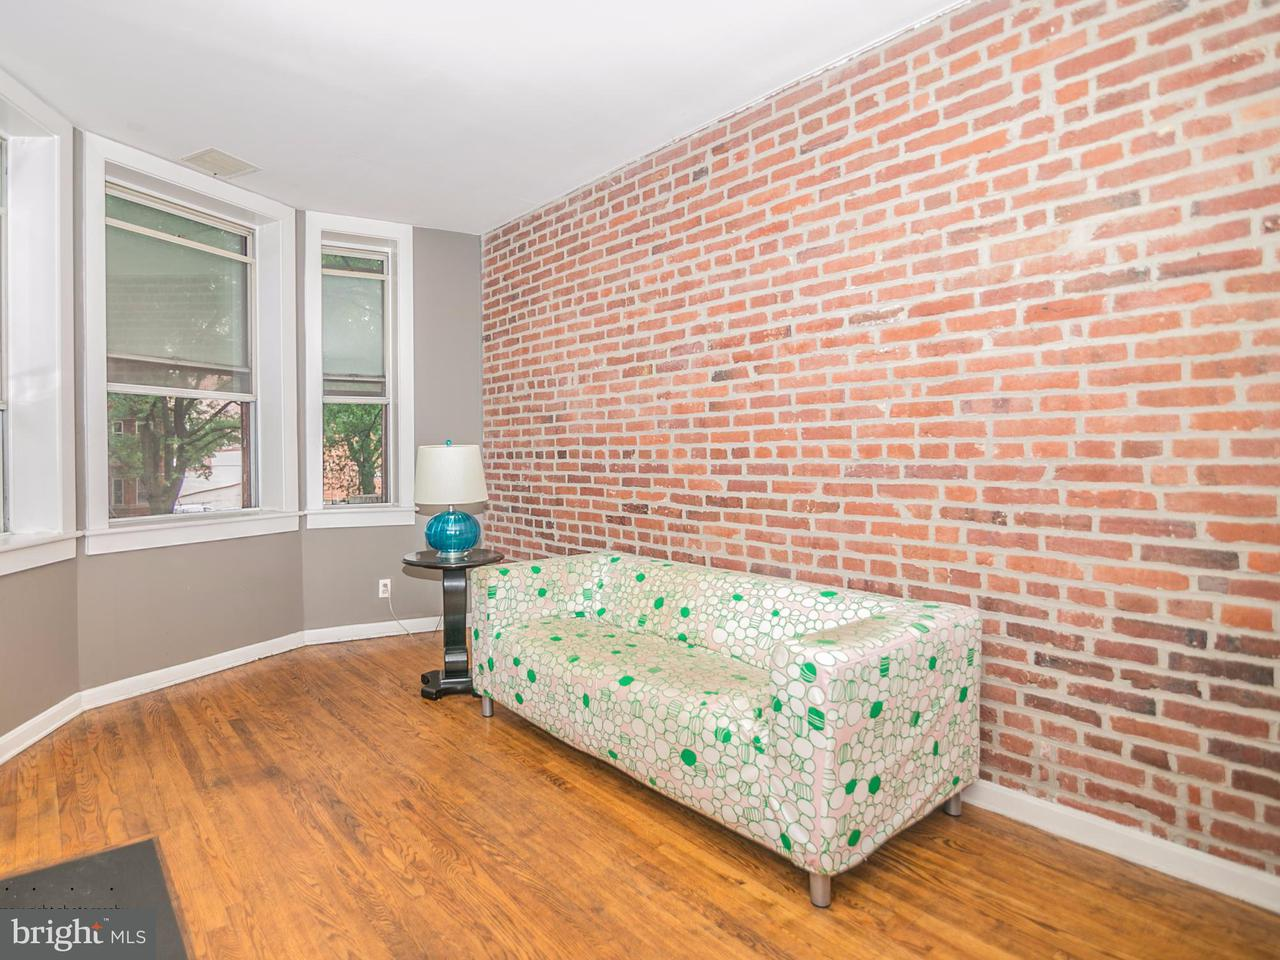 Additional photo for property listing at 1317 Rhode Island Ave NW #202  Washington, District Of Columbia 20005 United States